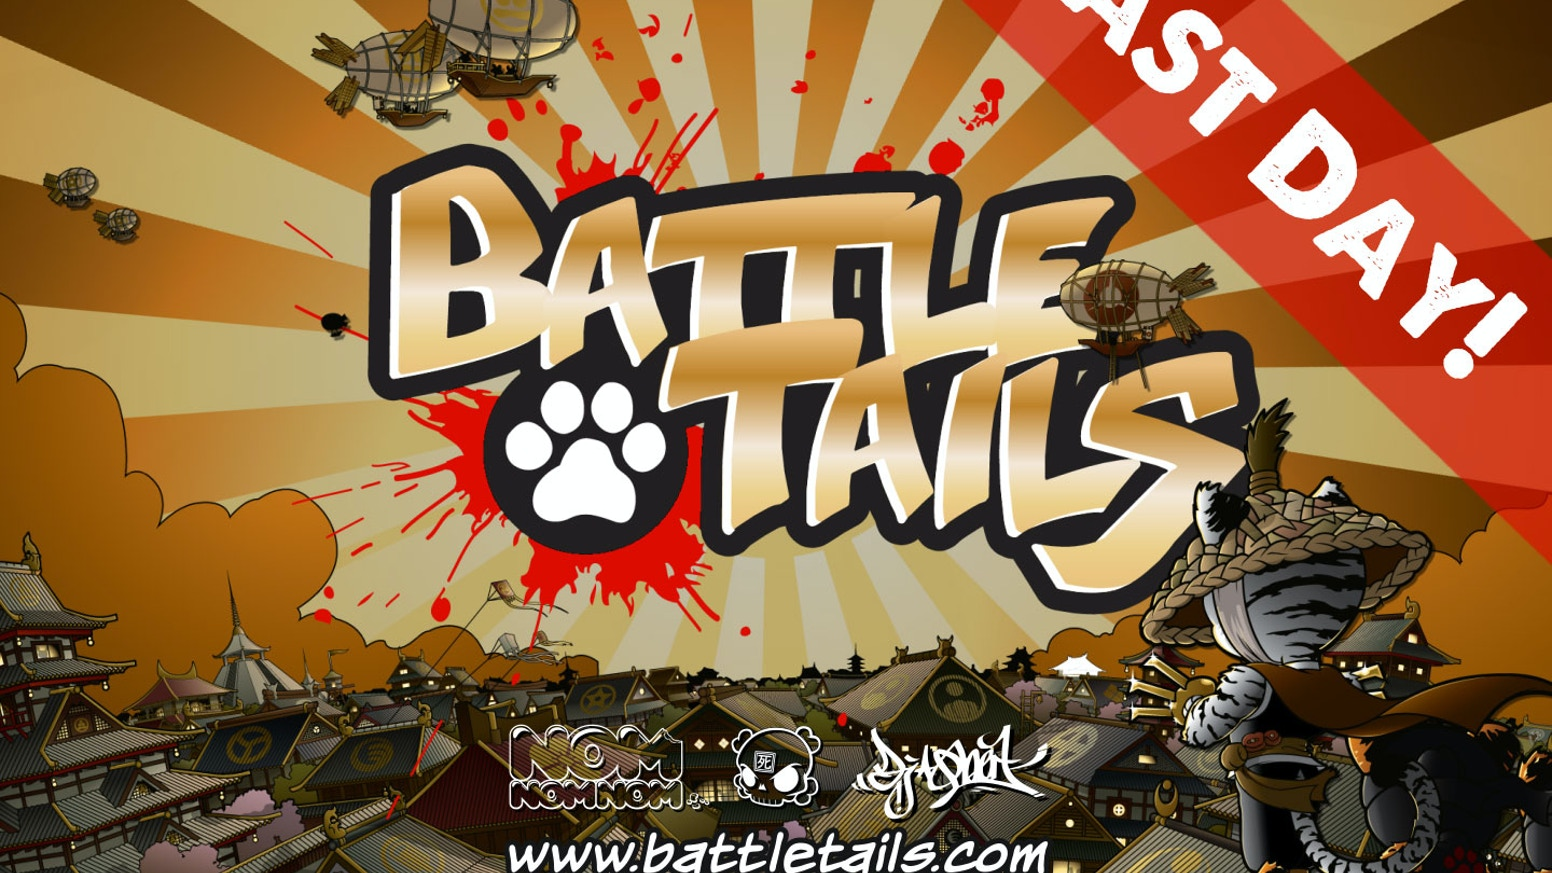 Battle Tails is a live action strategic defense game for Android and iOS that brings Huck Gee's Gold Life character designs to life!